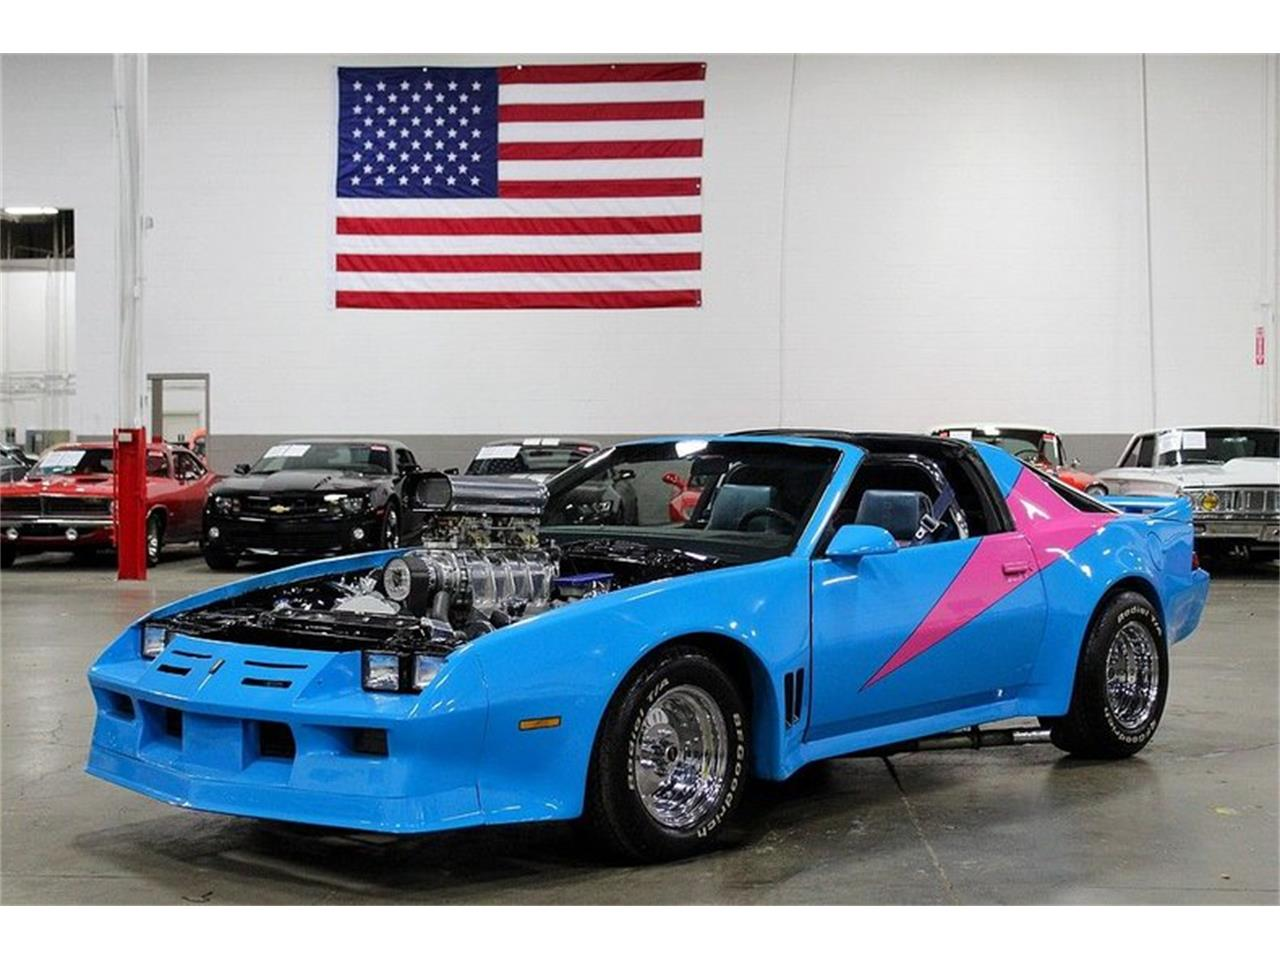 for sale 1982 chevrolet camaro in kentwood, michigan cars - grand rapids, mi at geebo